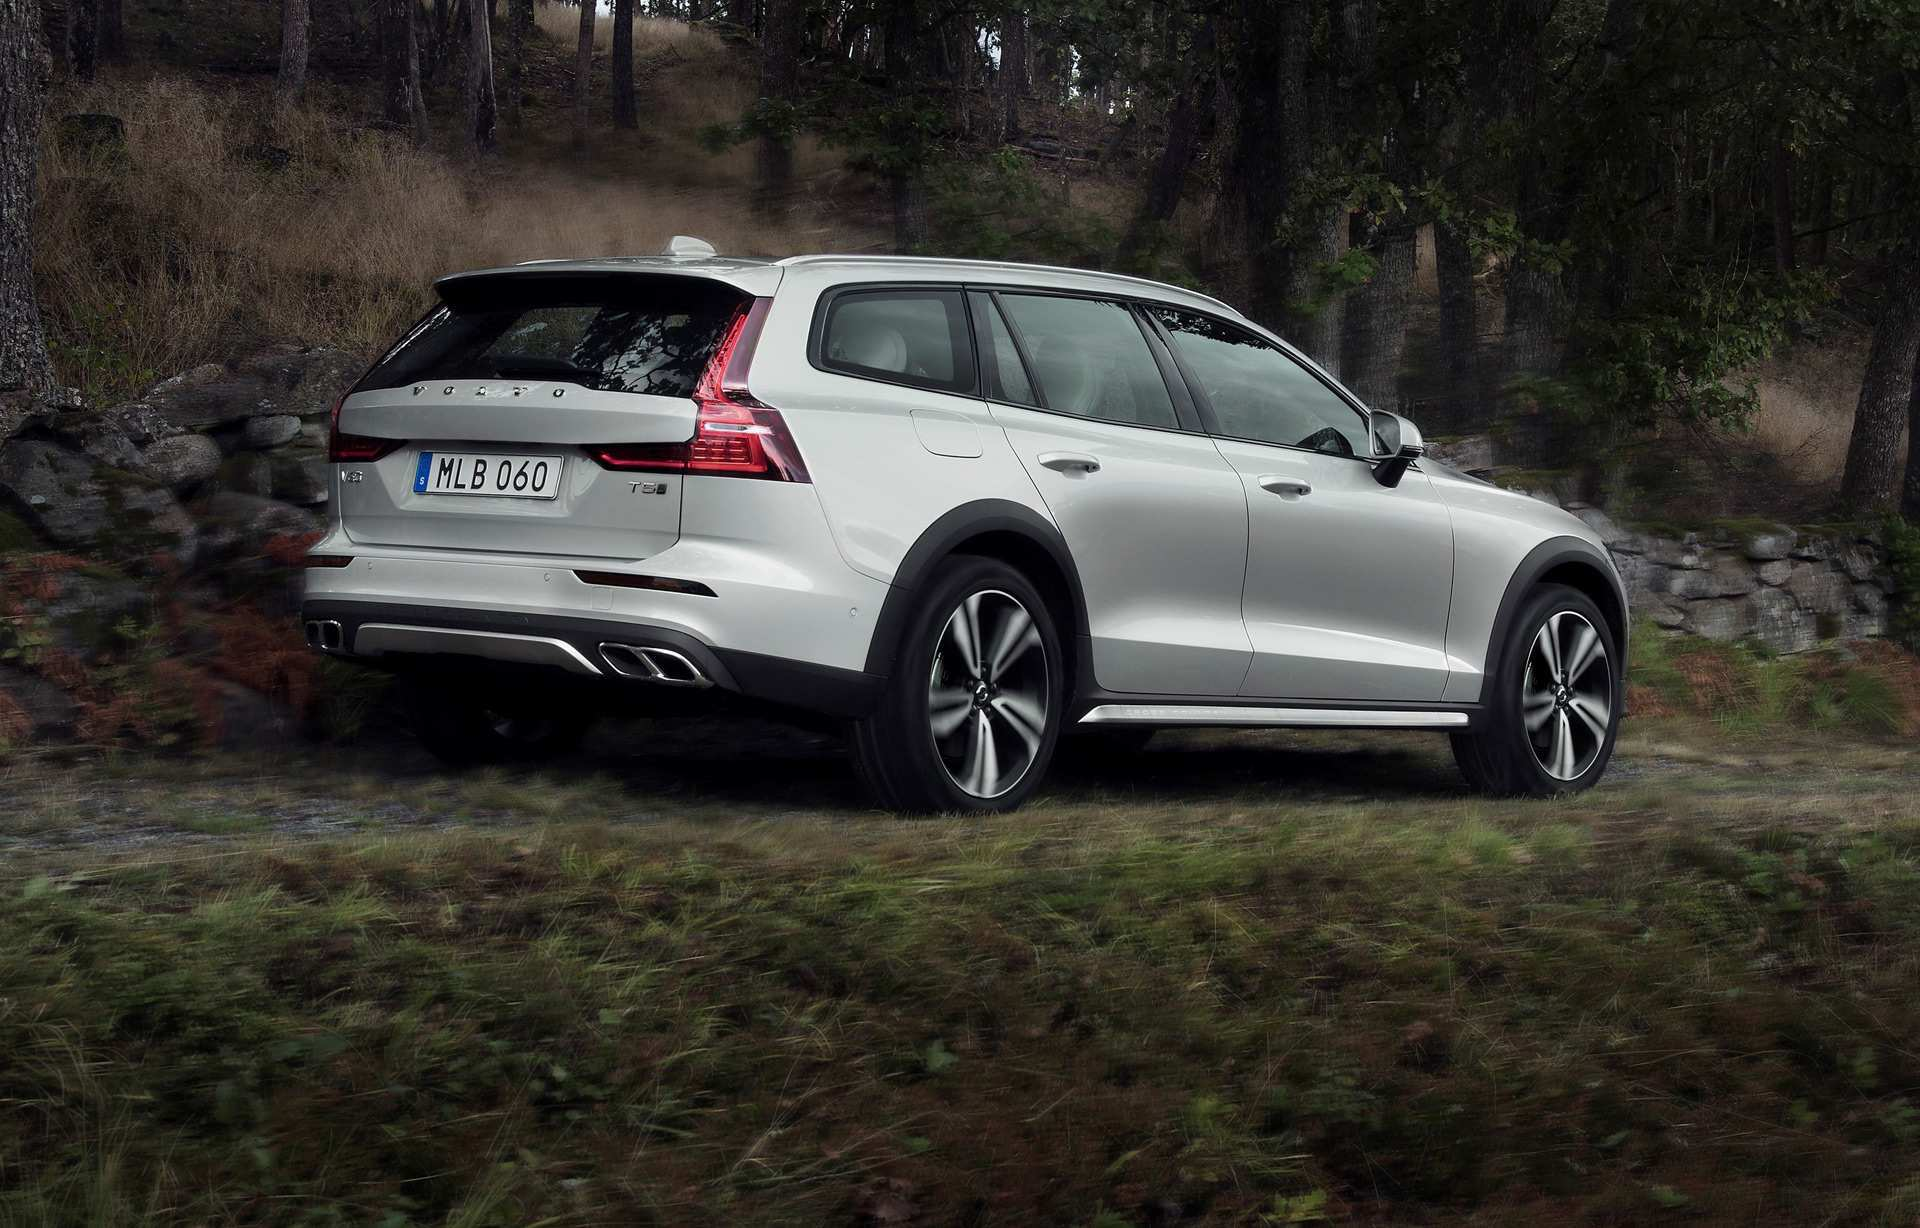 80 The Best 2019 Volvo V60 Cross Country Review And Release Date